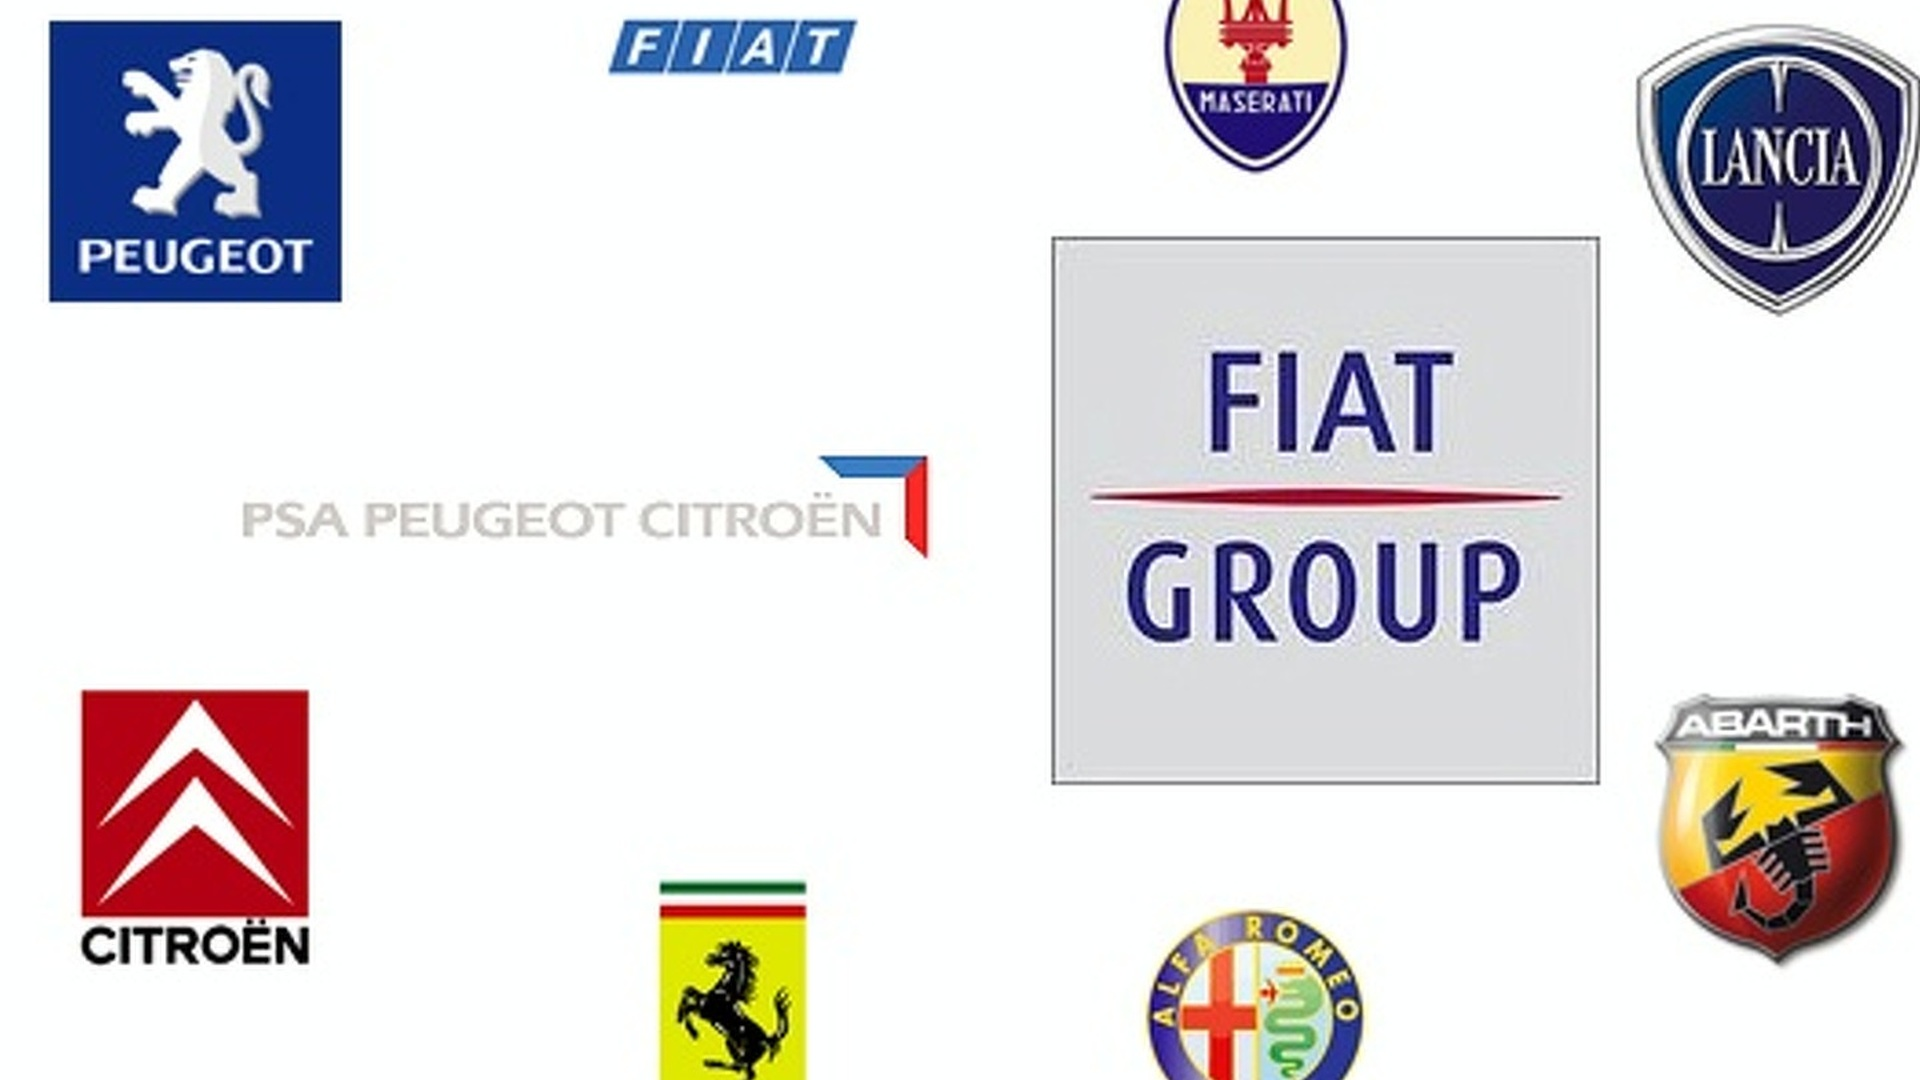 Possible Fiat And Psa Peugeot Citroen Merger On The Table